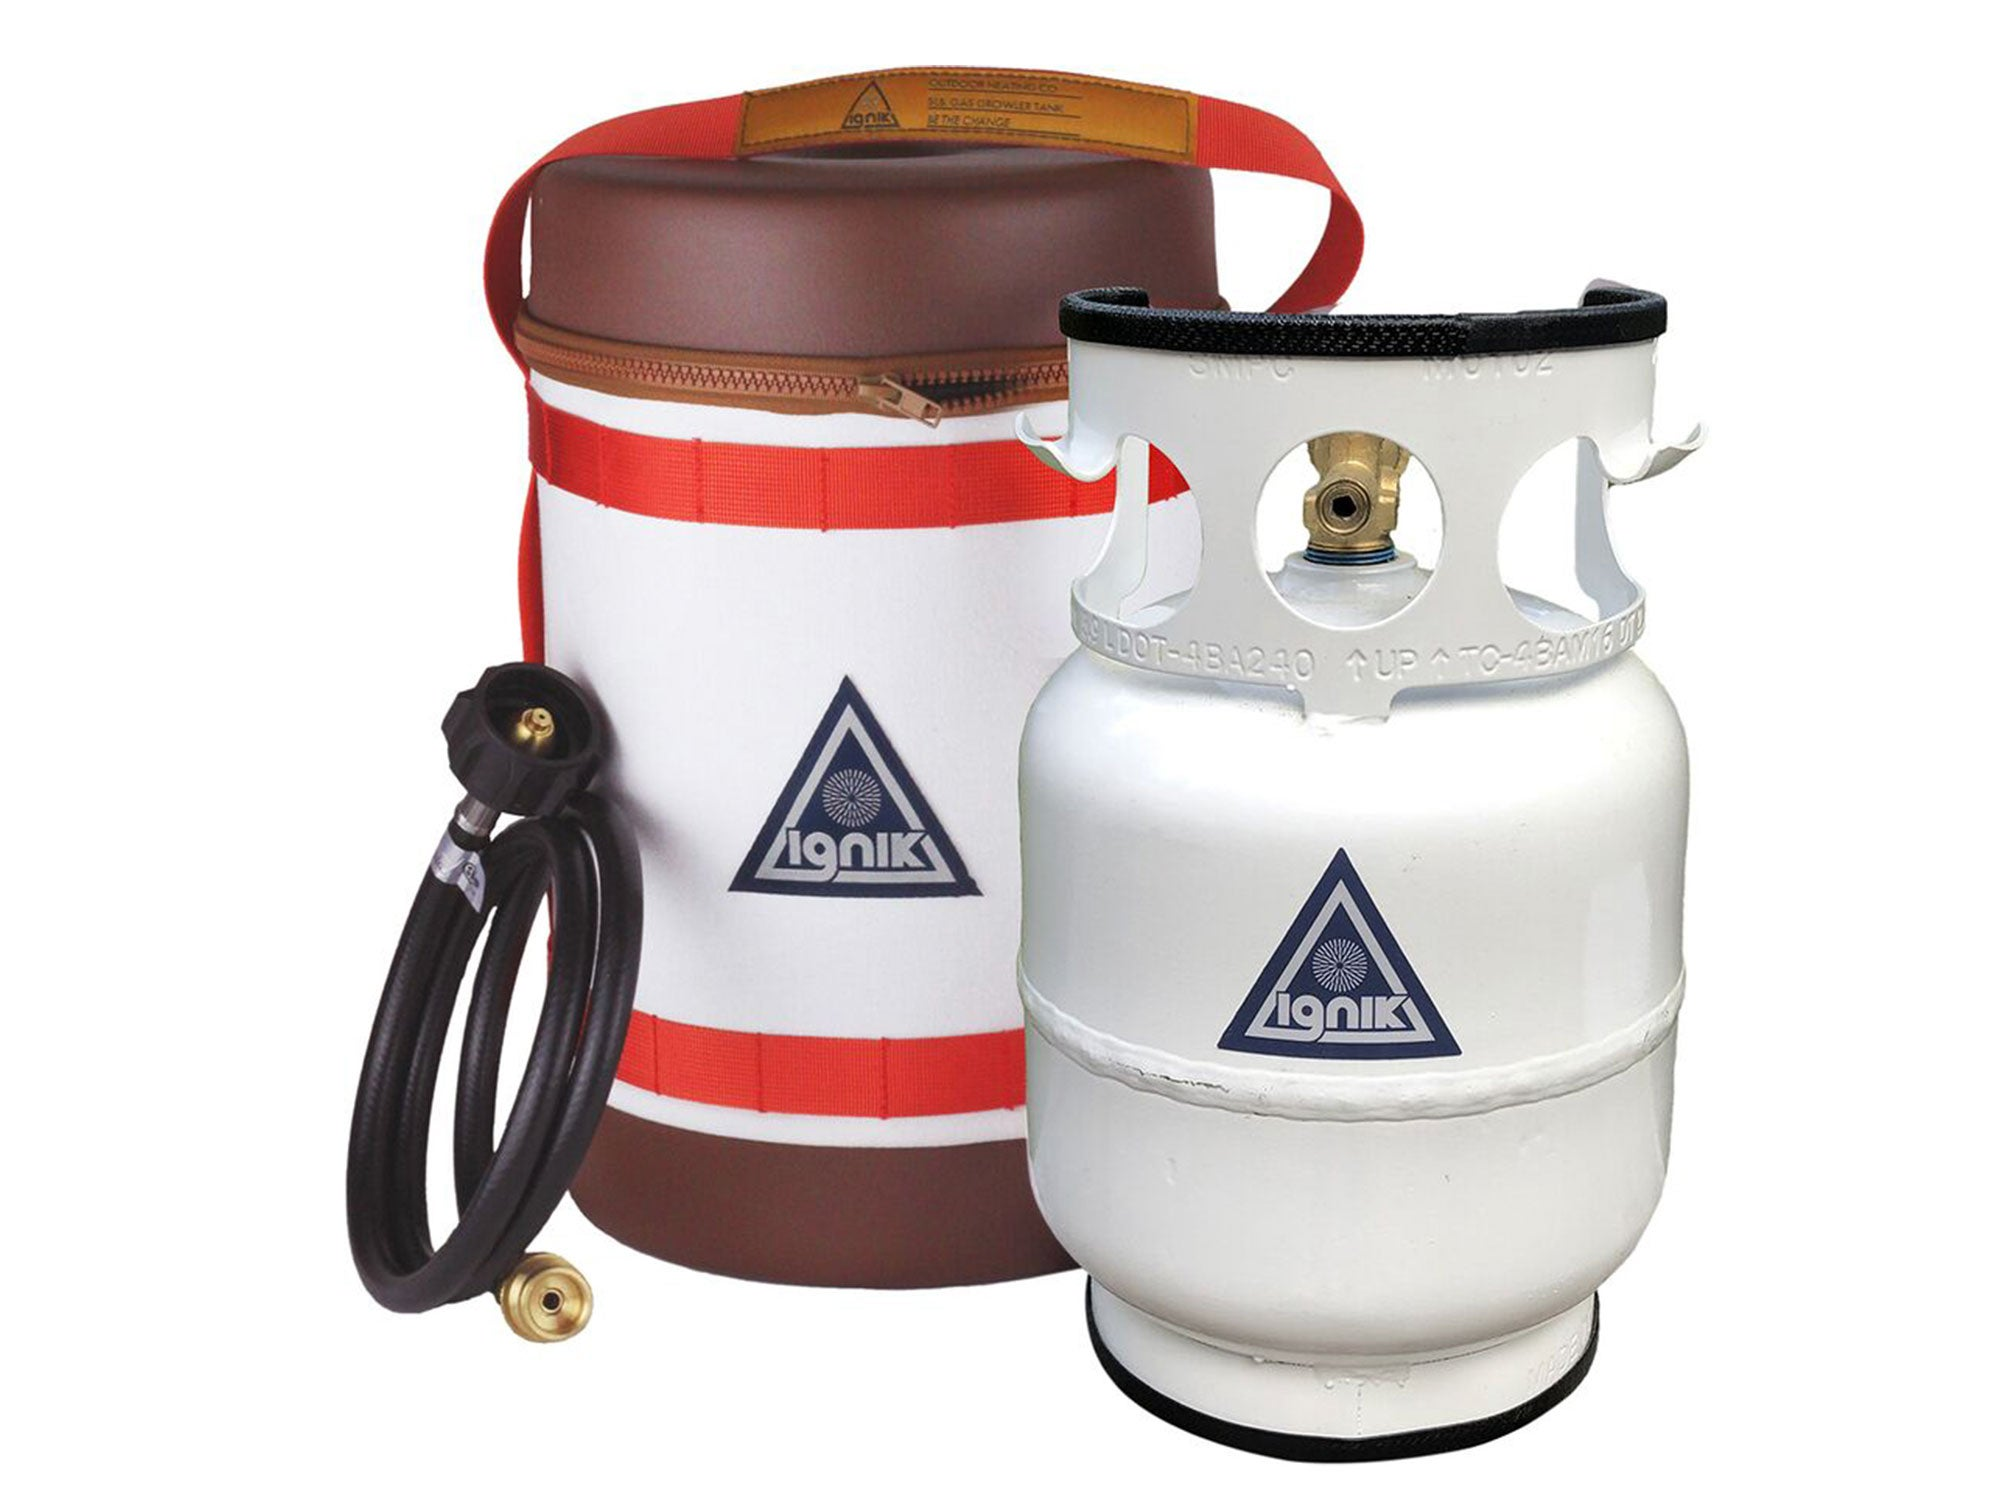 Ignik Outdoors Deluxe Gas Growle